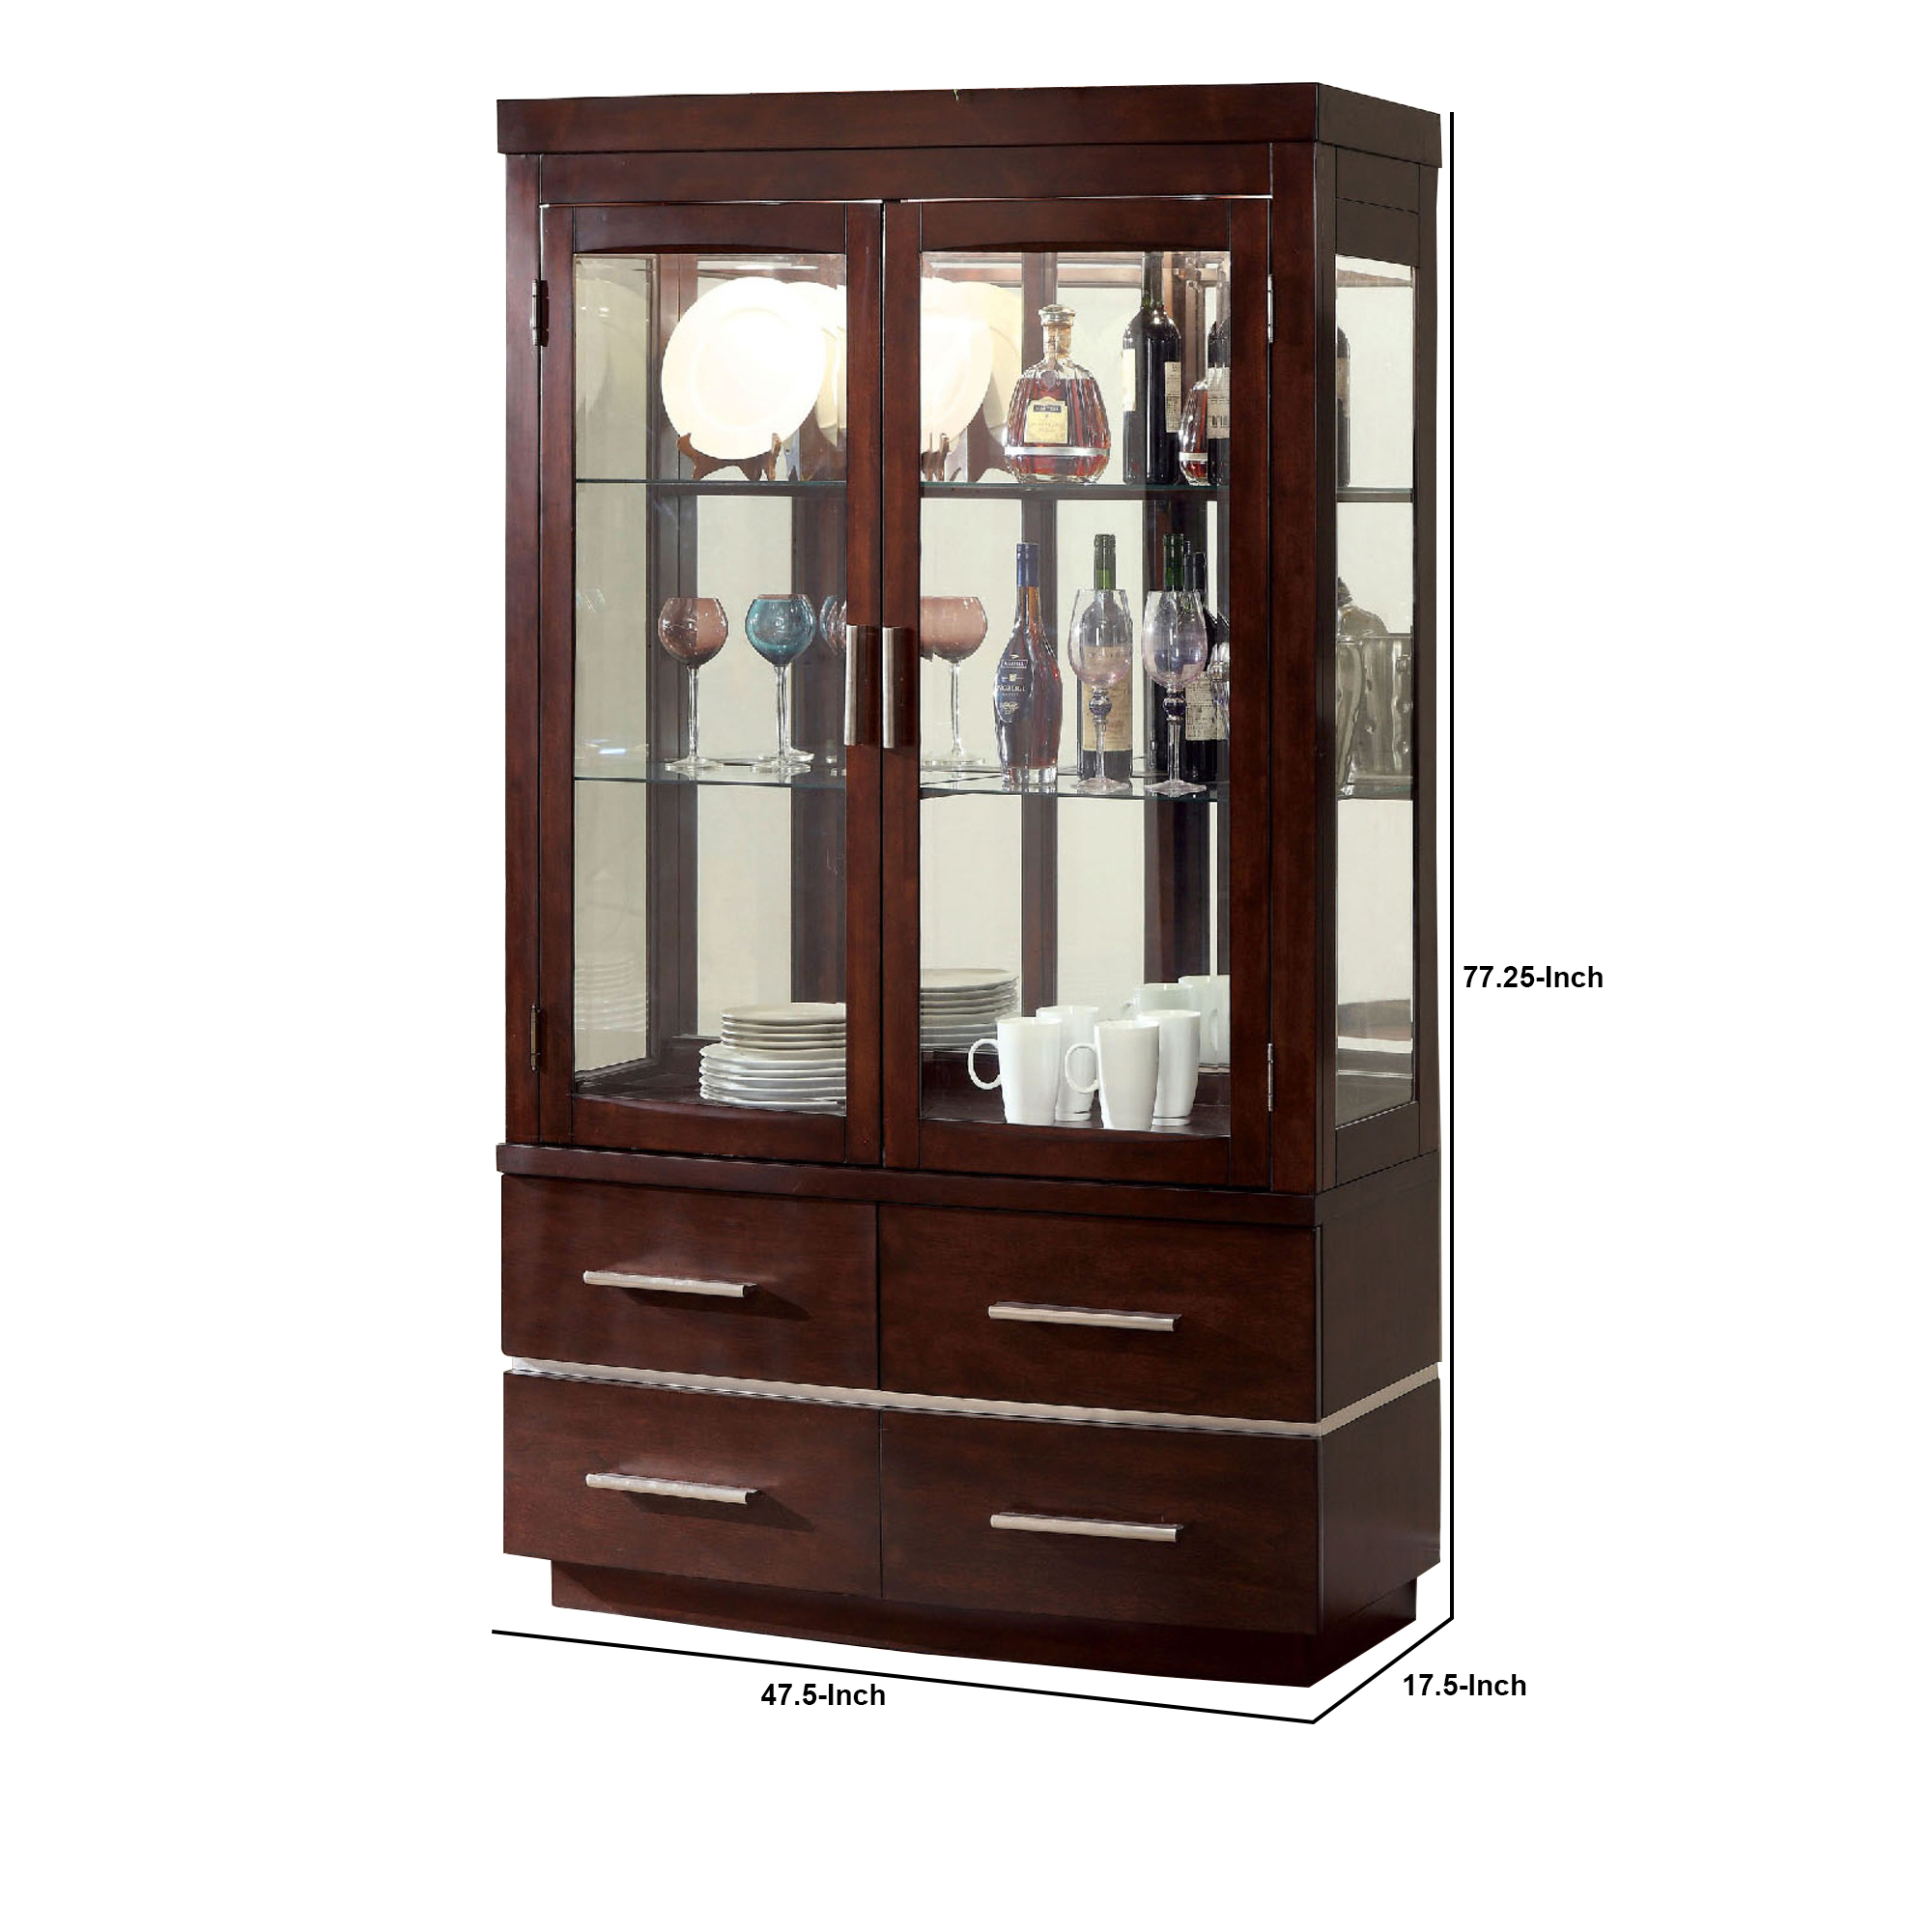 benjara bm216389 wood glass curio cabinet with touch led lights brown 77 25 x 17 5 x 47 5 in